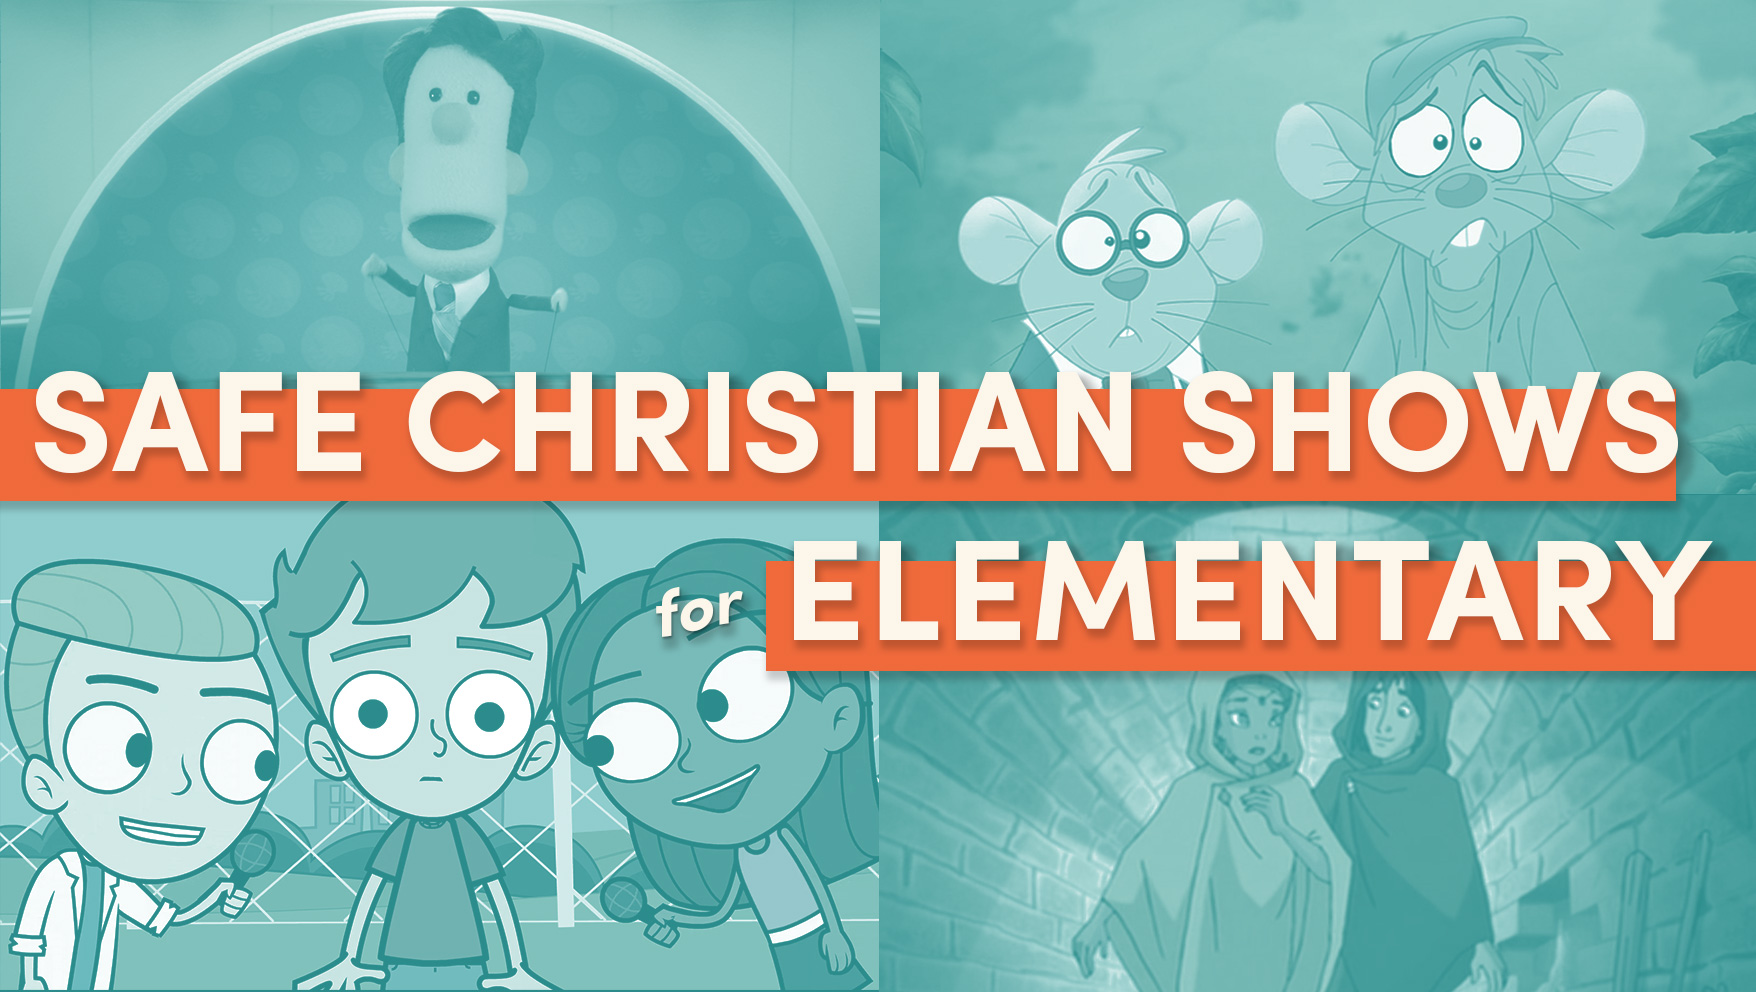 Best Christian Shows for Elementary Schoolers